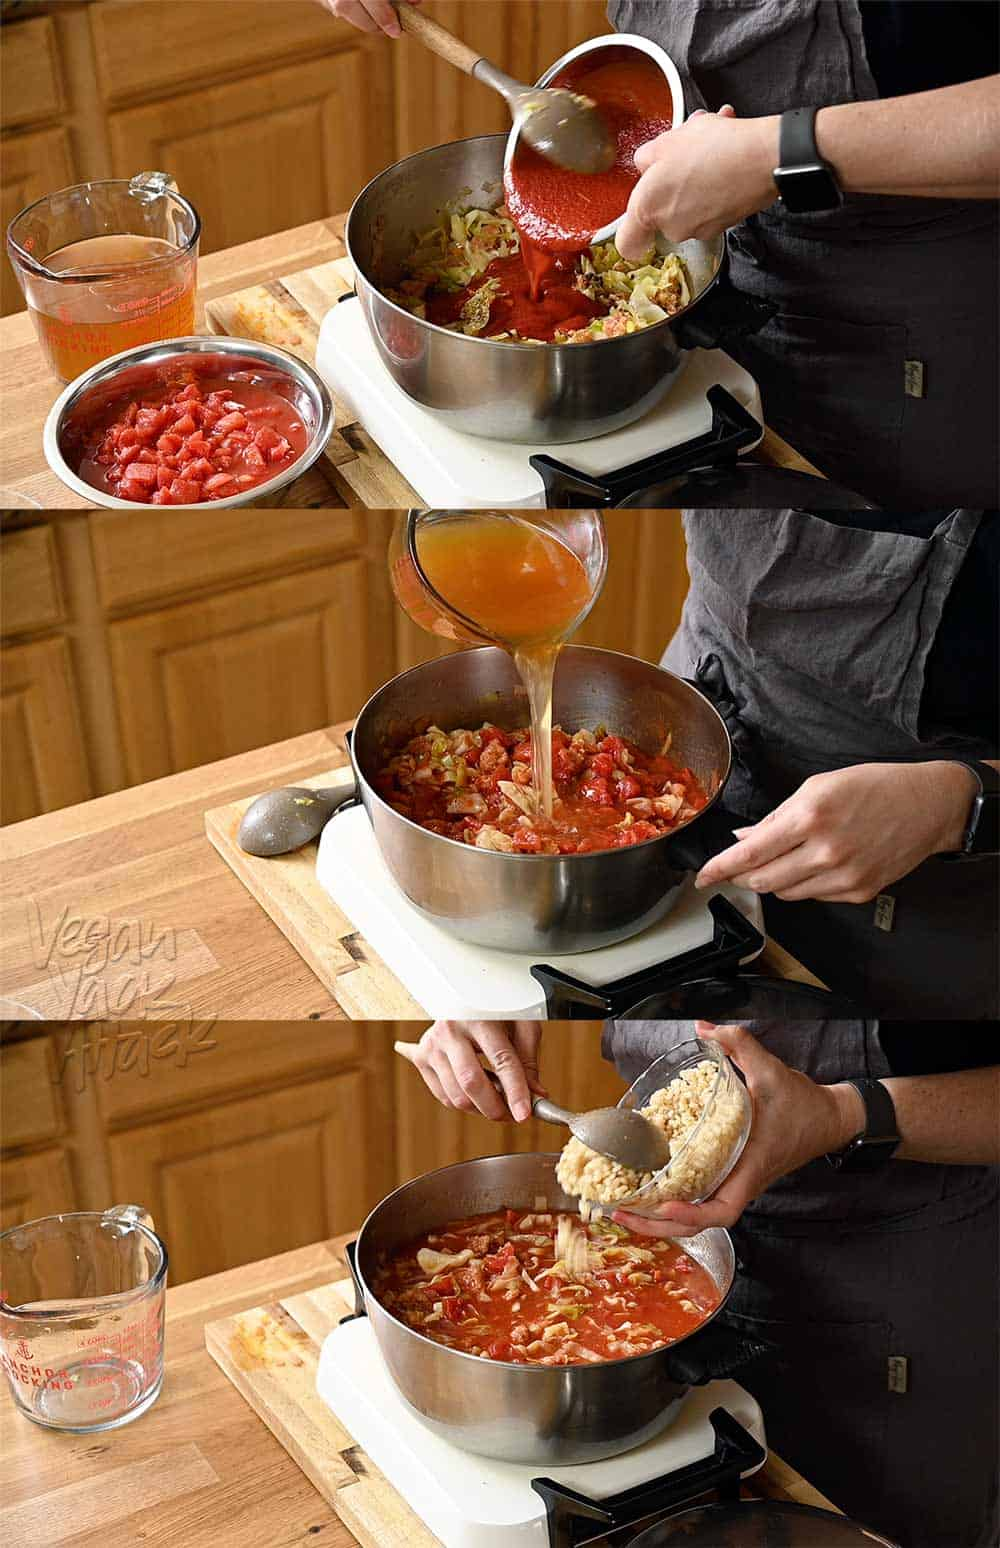 Image collage of person pouring ingredients into a pot